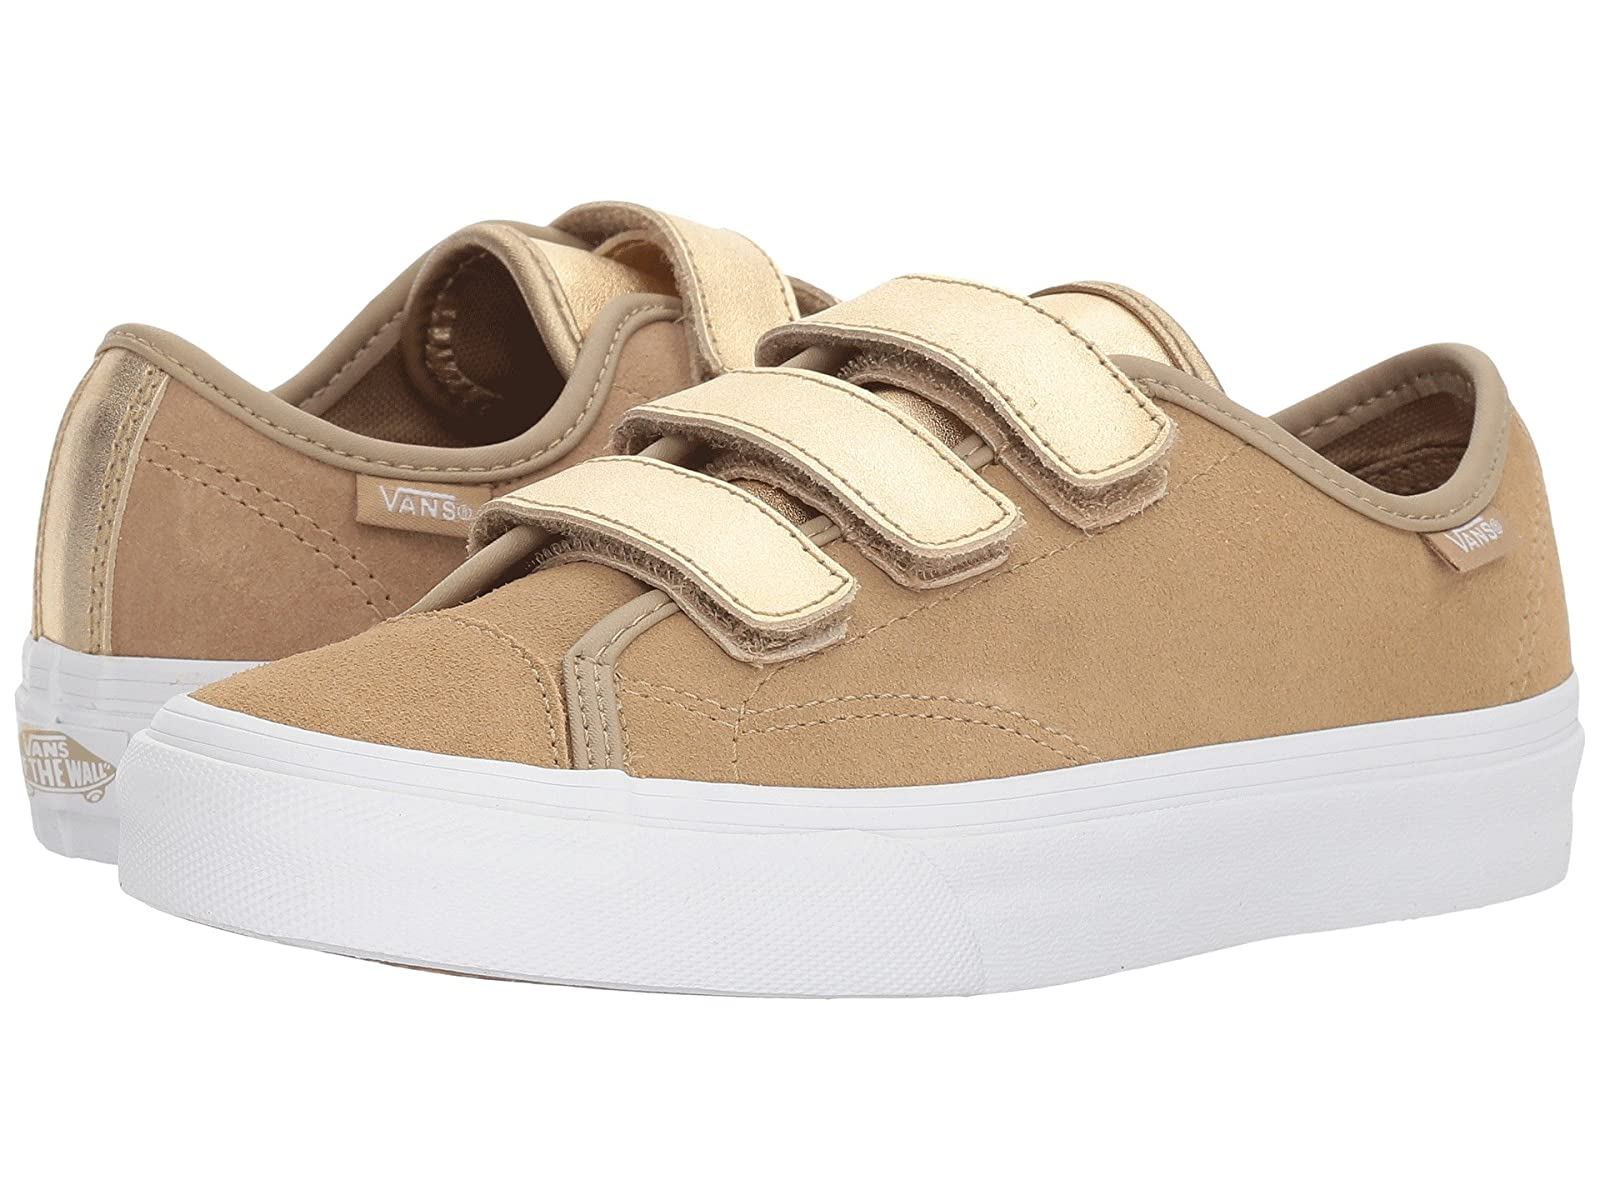 Vans Style 23 VAtmospheric grades have affordable shoes